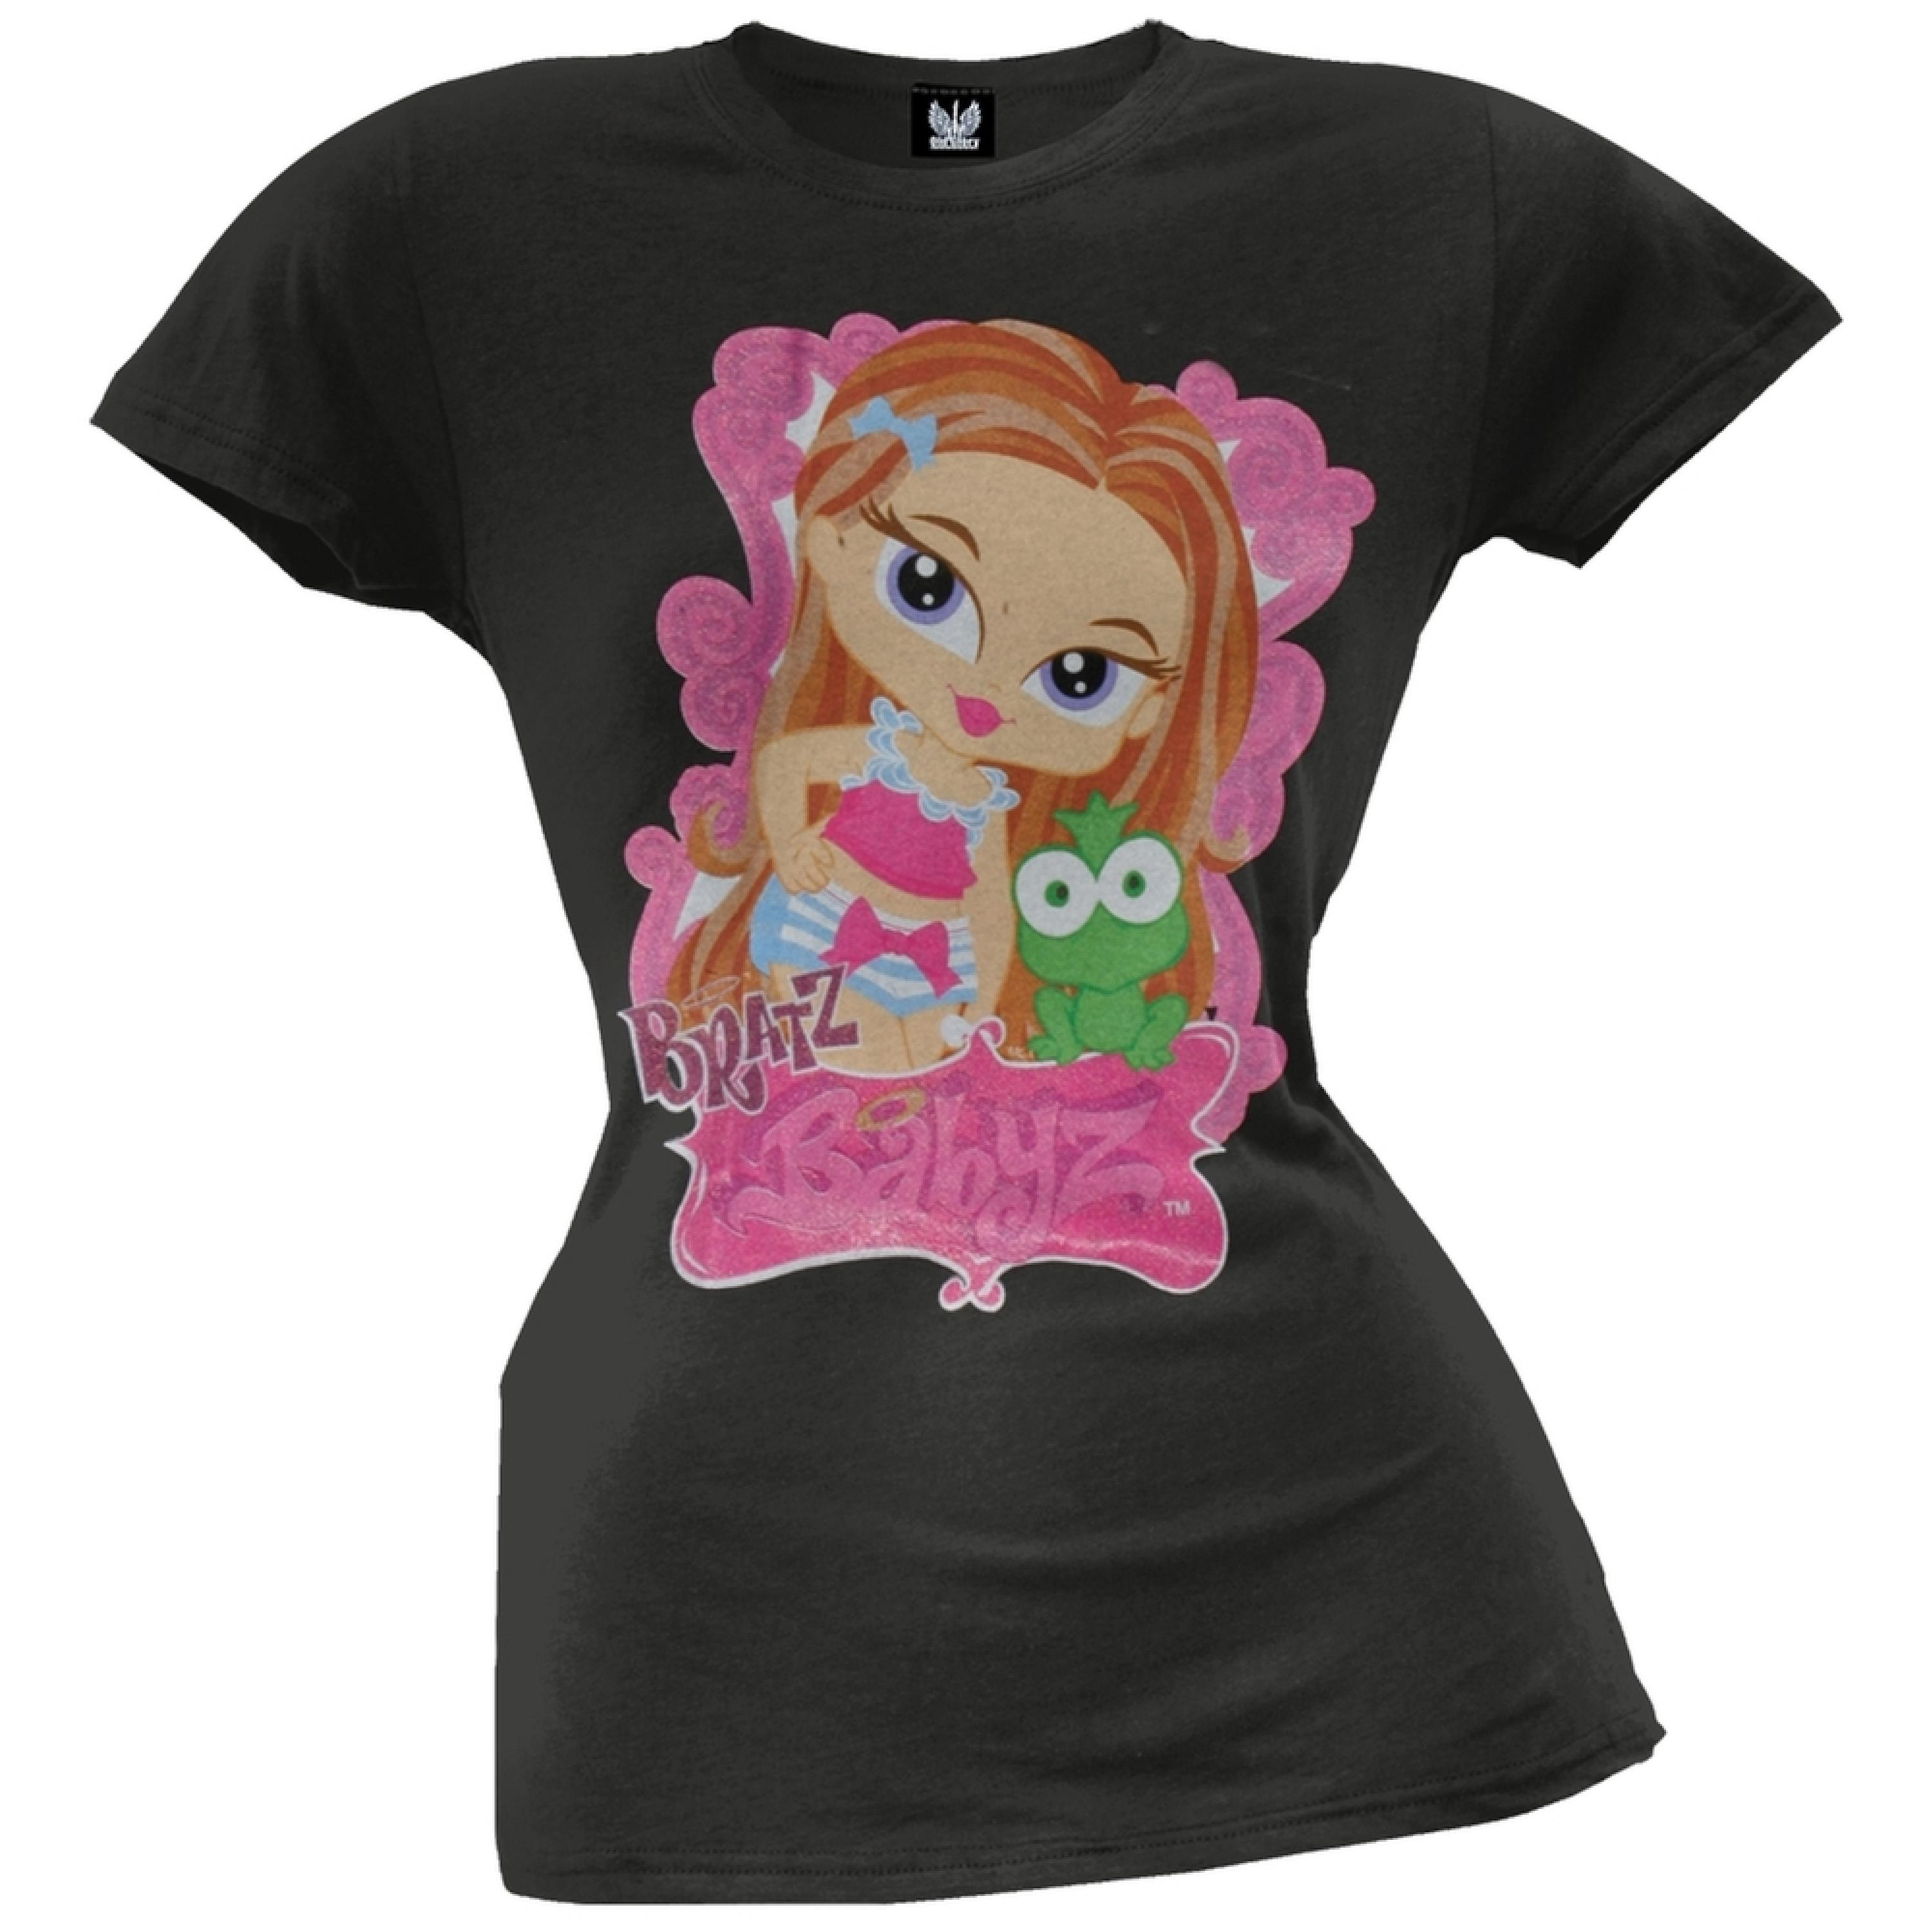 Bratz - Frog Juvy Girls T-Shirt